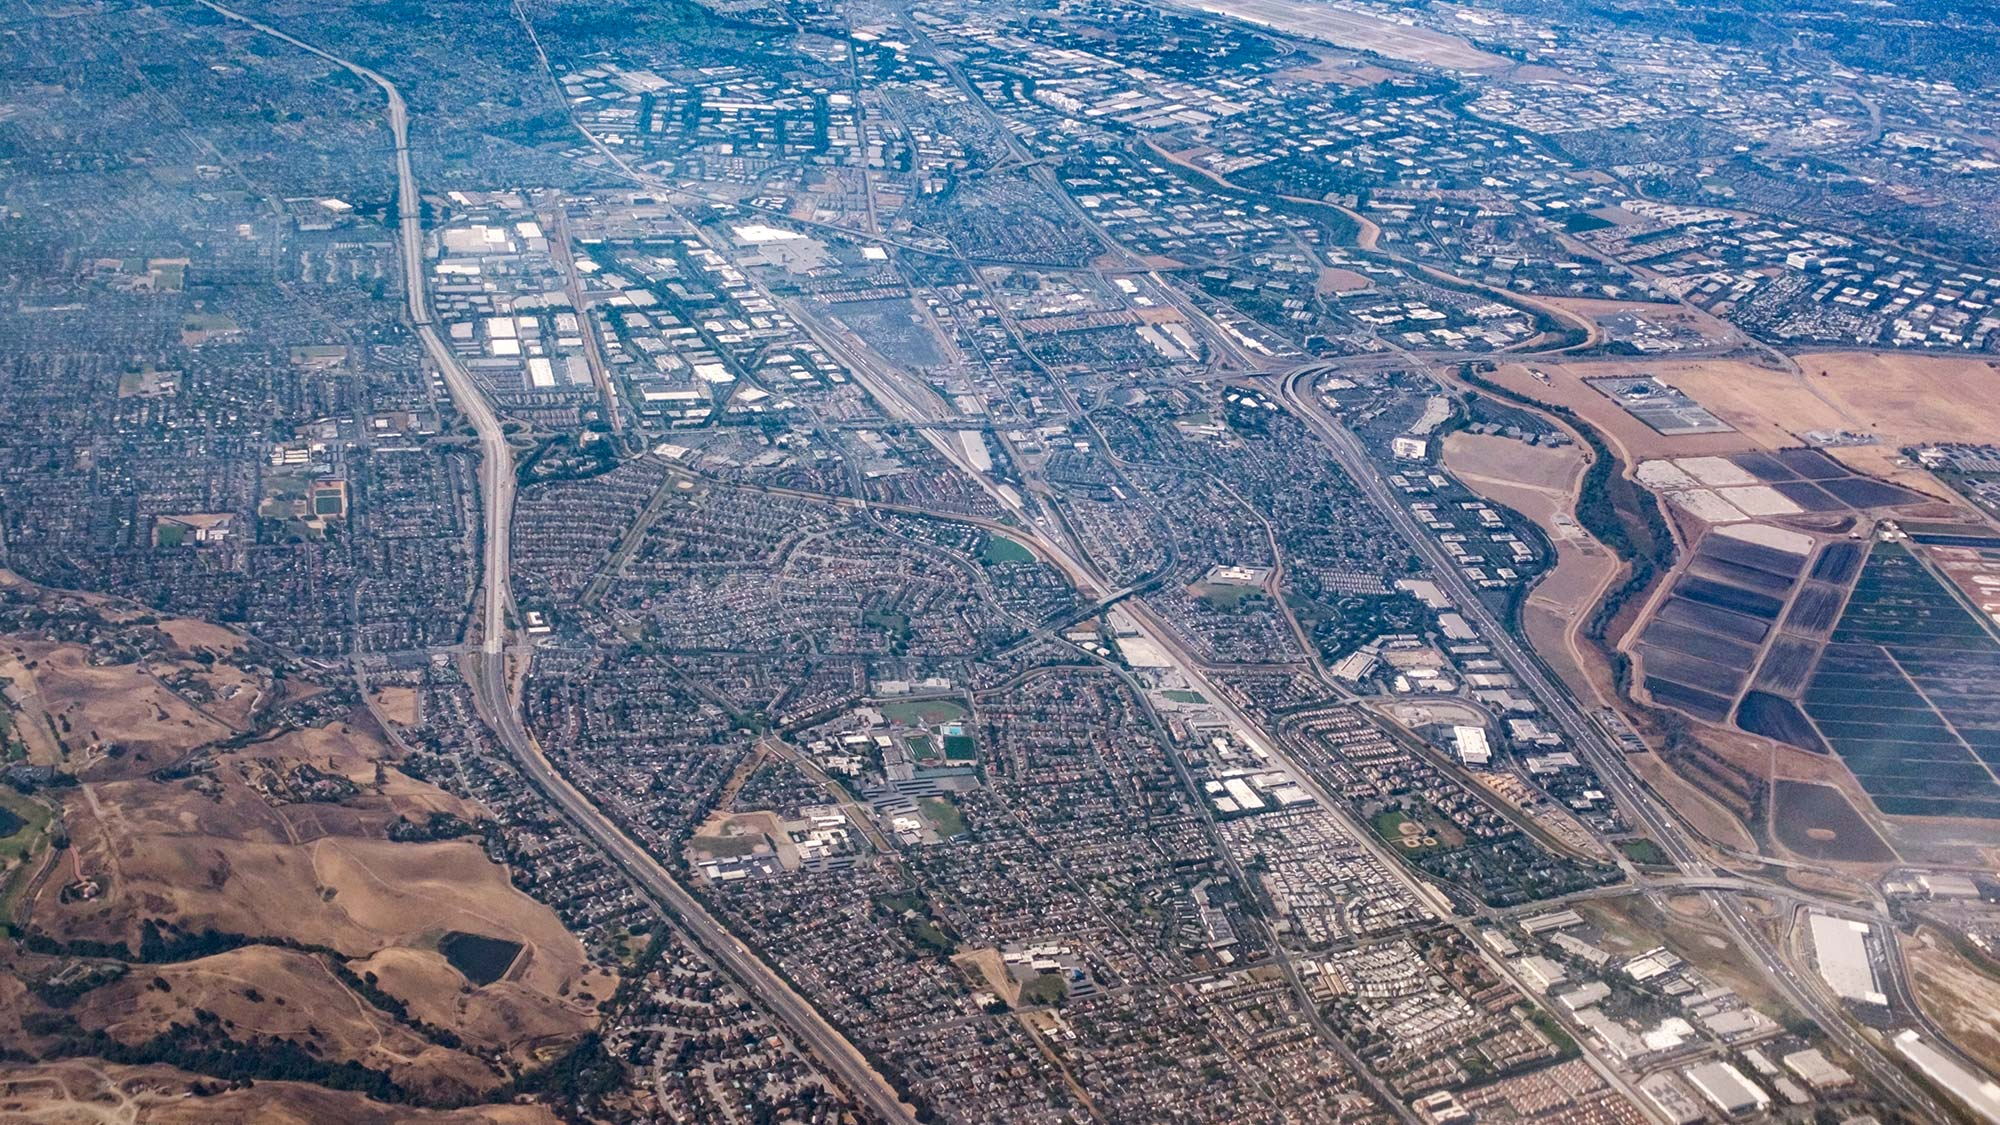 b958e milpitas The 10 US Cities With the Fastest Growing Suburbs